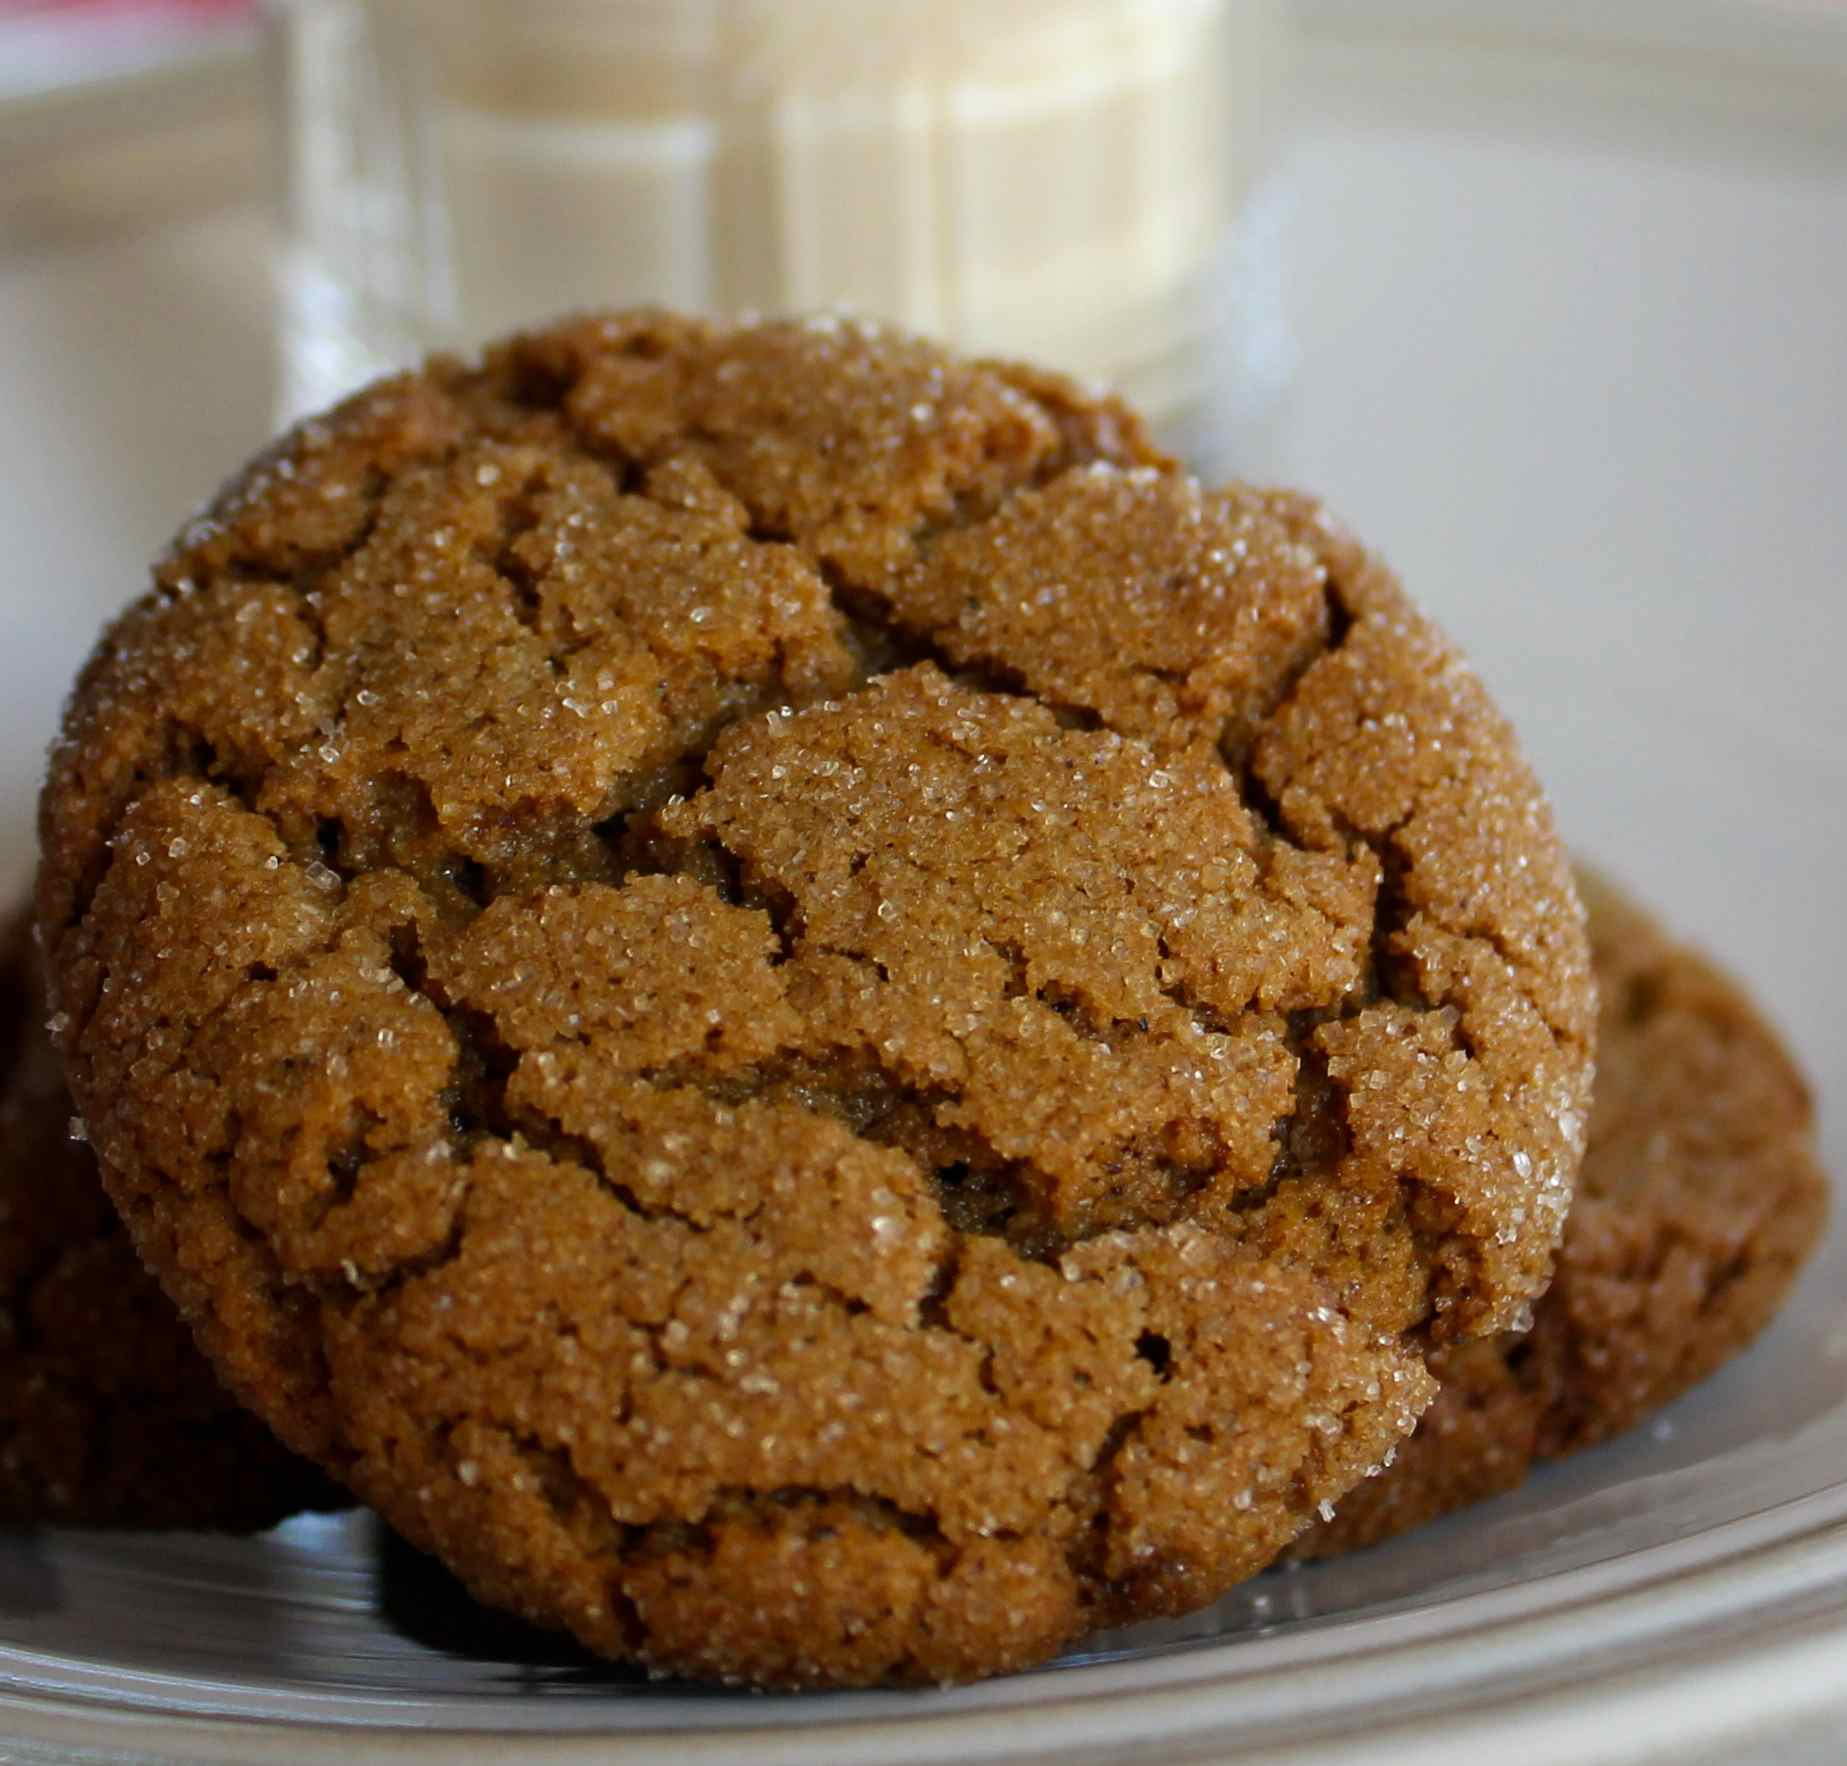 Gluten-free gingersnap cookies on a plate